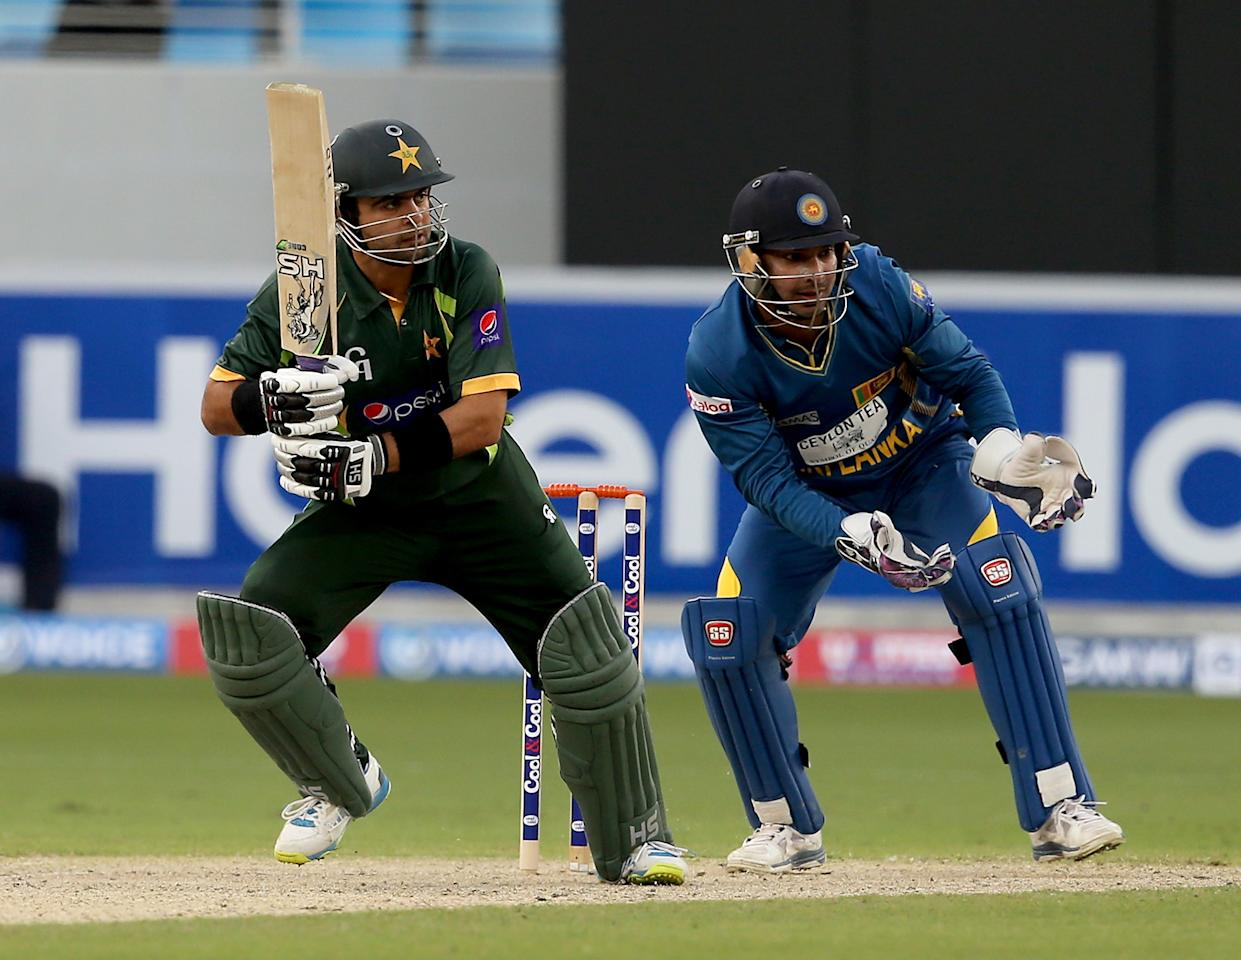 DUBAI, UNITED ARAB EMIRATES - DECEMBER 20:  Ahmed Shahzad of Pakistan bats during the second One-Day International (ODI ) match between Sri Lanka and Pakistan at the Dubai Sports City Cricket Stadium on December 20, 2013 in Dubai, United Arab Emirates.  (Photo by Francois Nel/Getty Images)